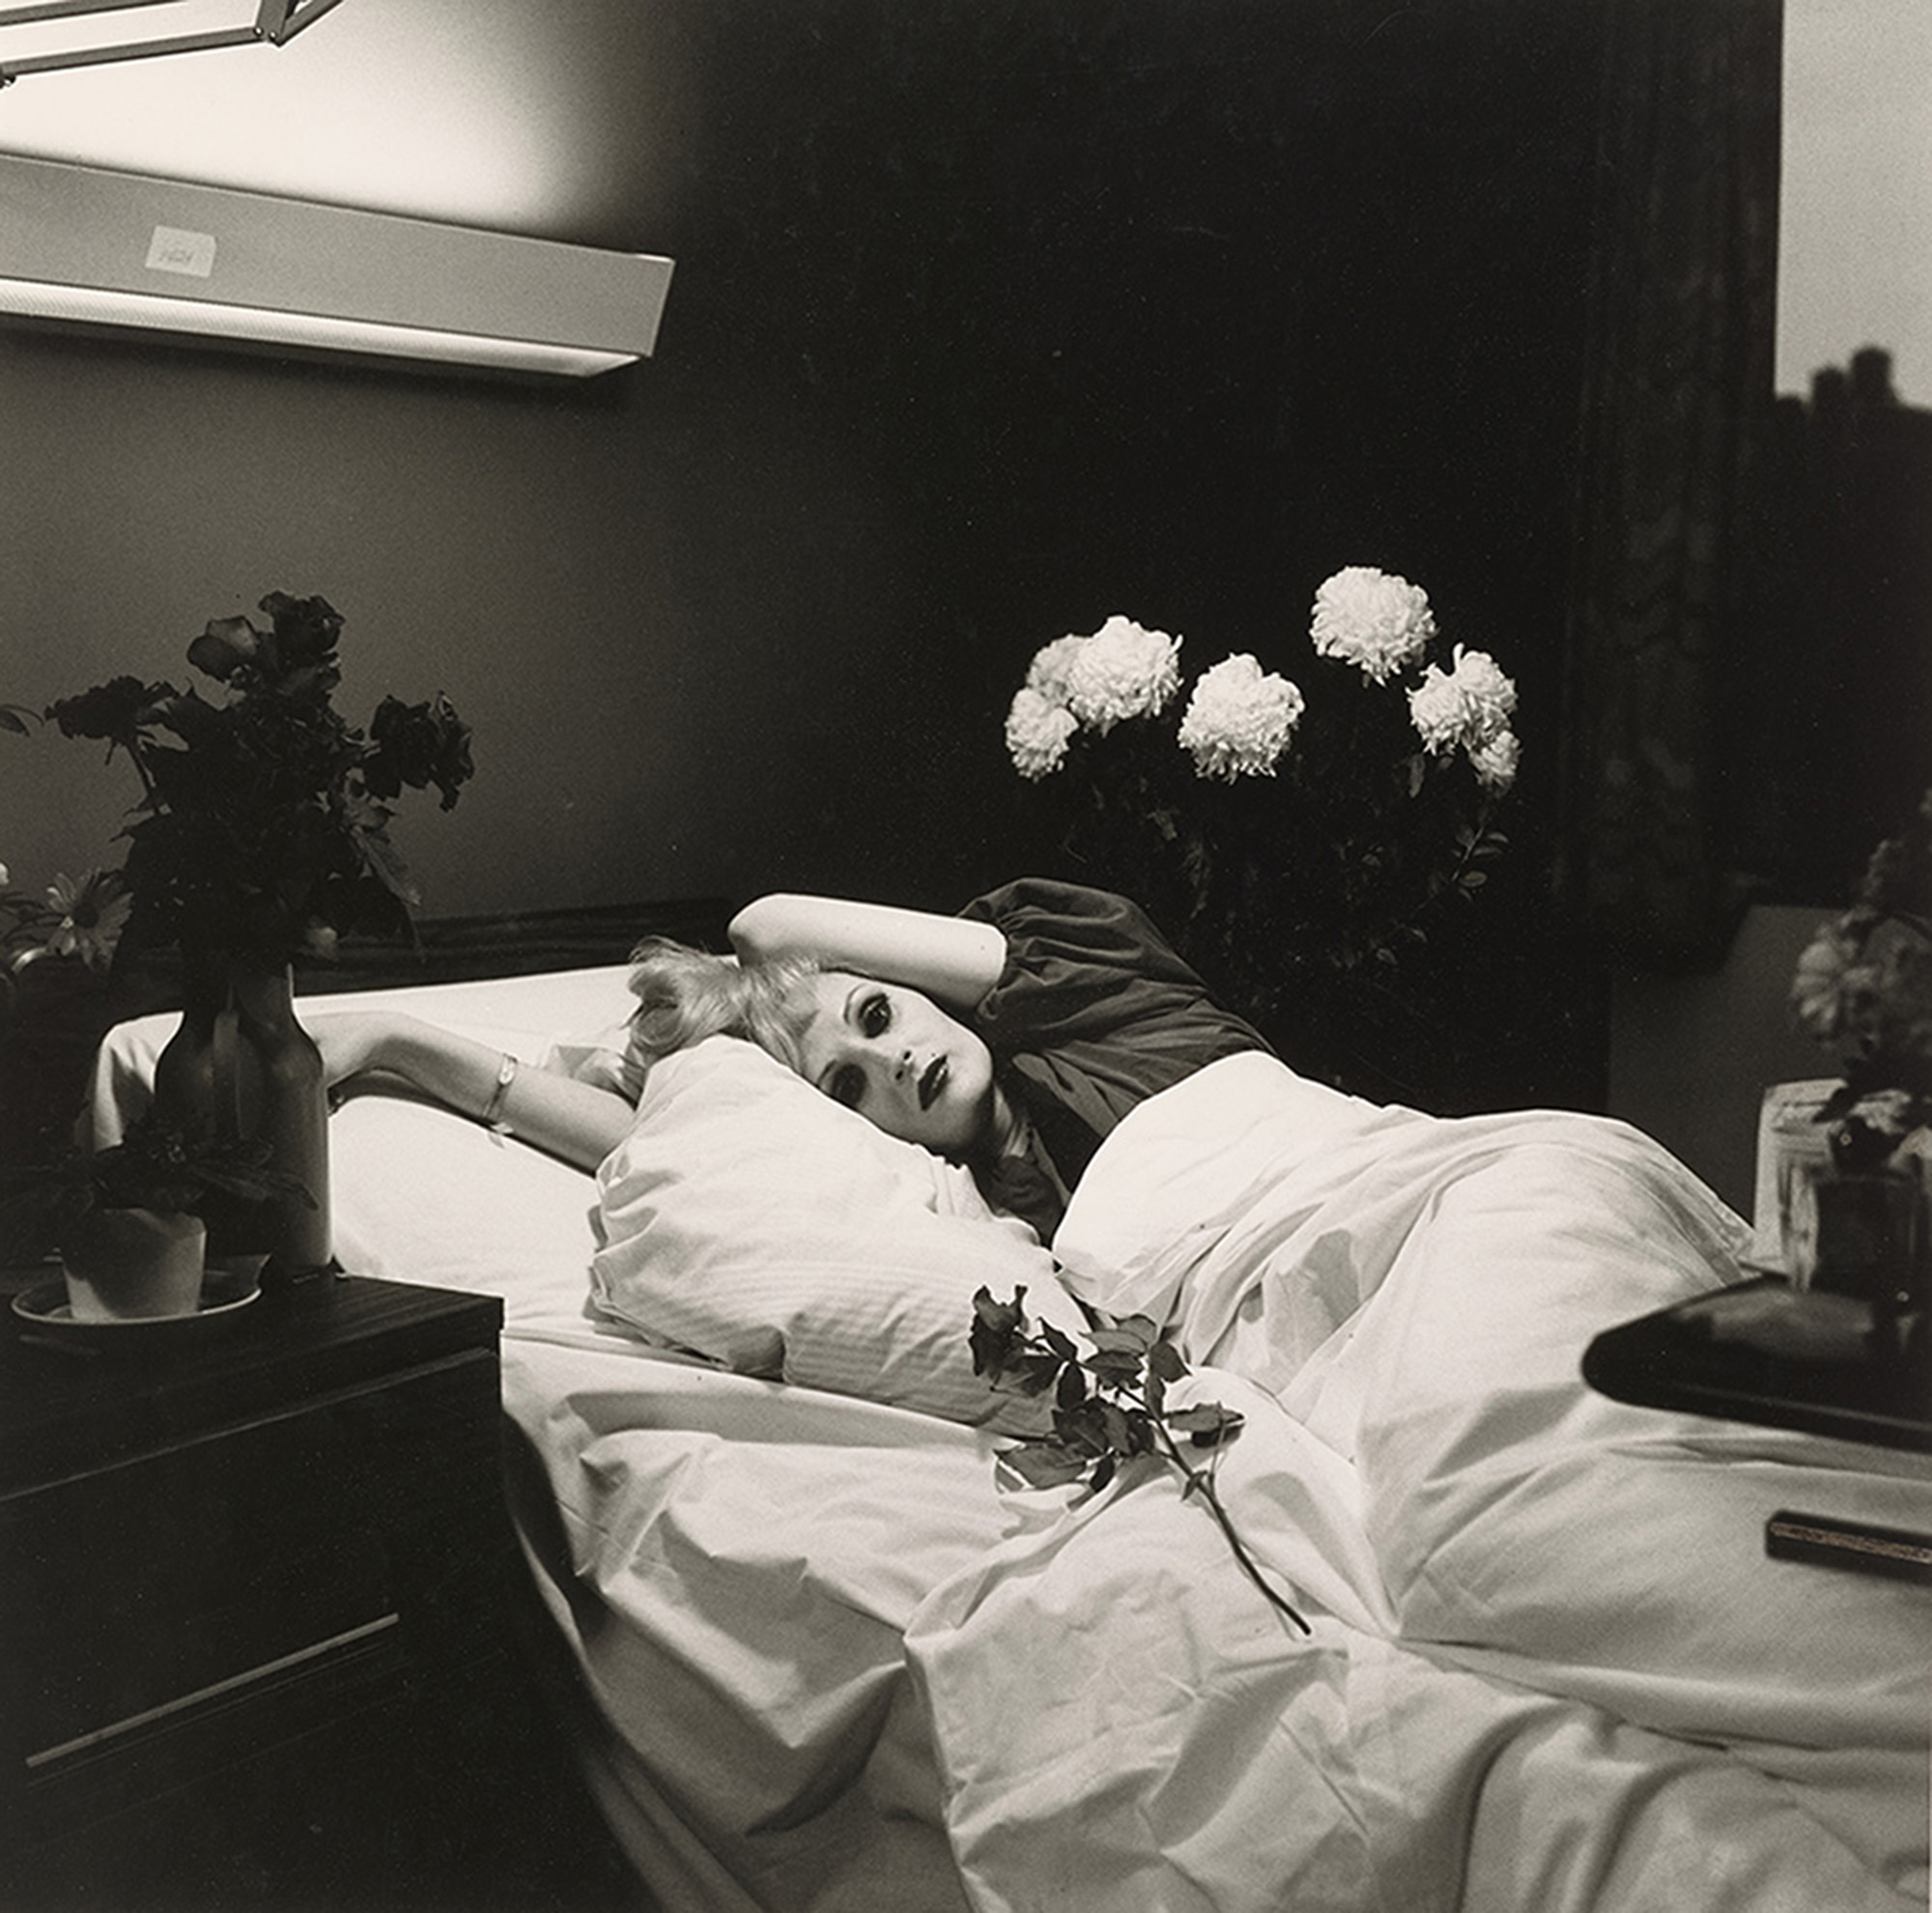 Candy Darling on her Deathbed, 1973, gelatin silver print, collection of Ronay and Richard Menschel. © Peter Hujar Archive, LLC, courtesy Pace/MacGill Gallery, New York and Fraenkel Gallery, San Francisco.